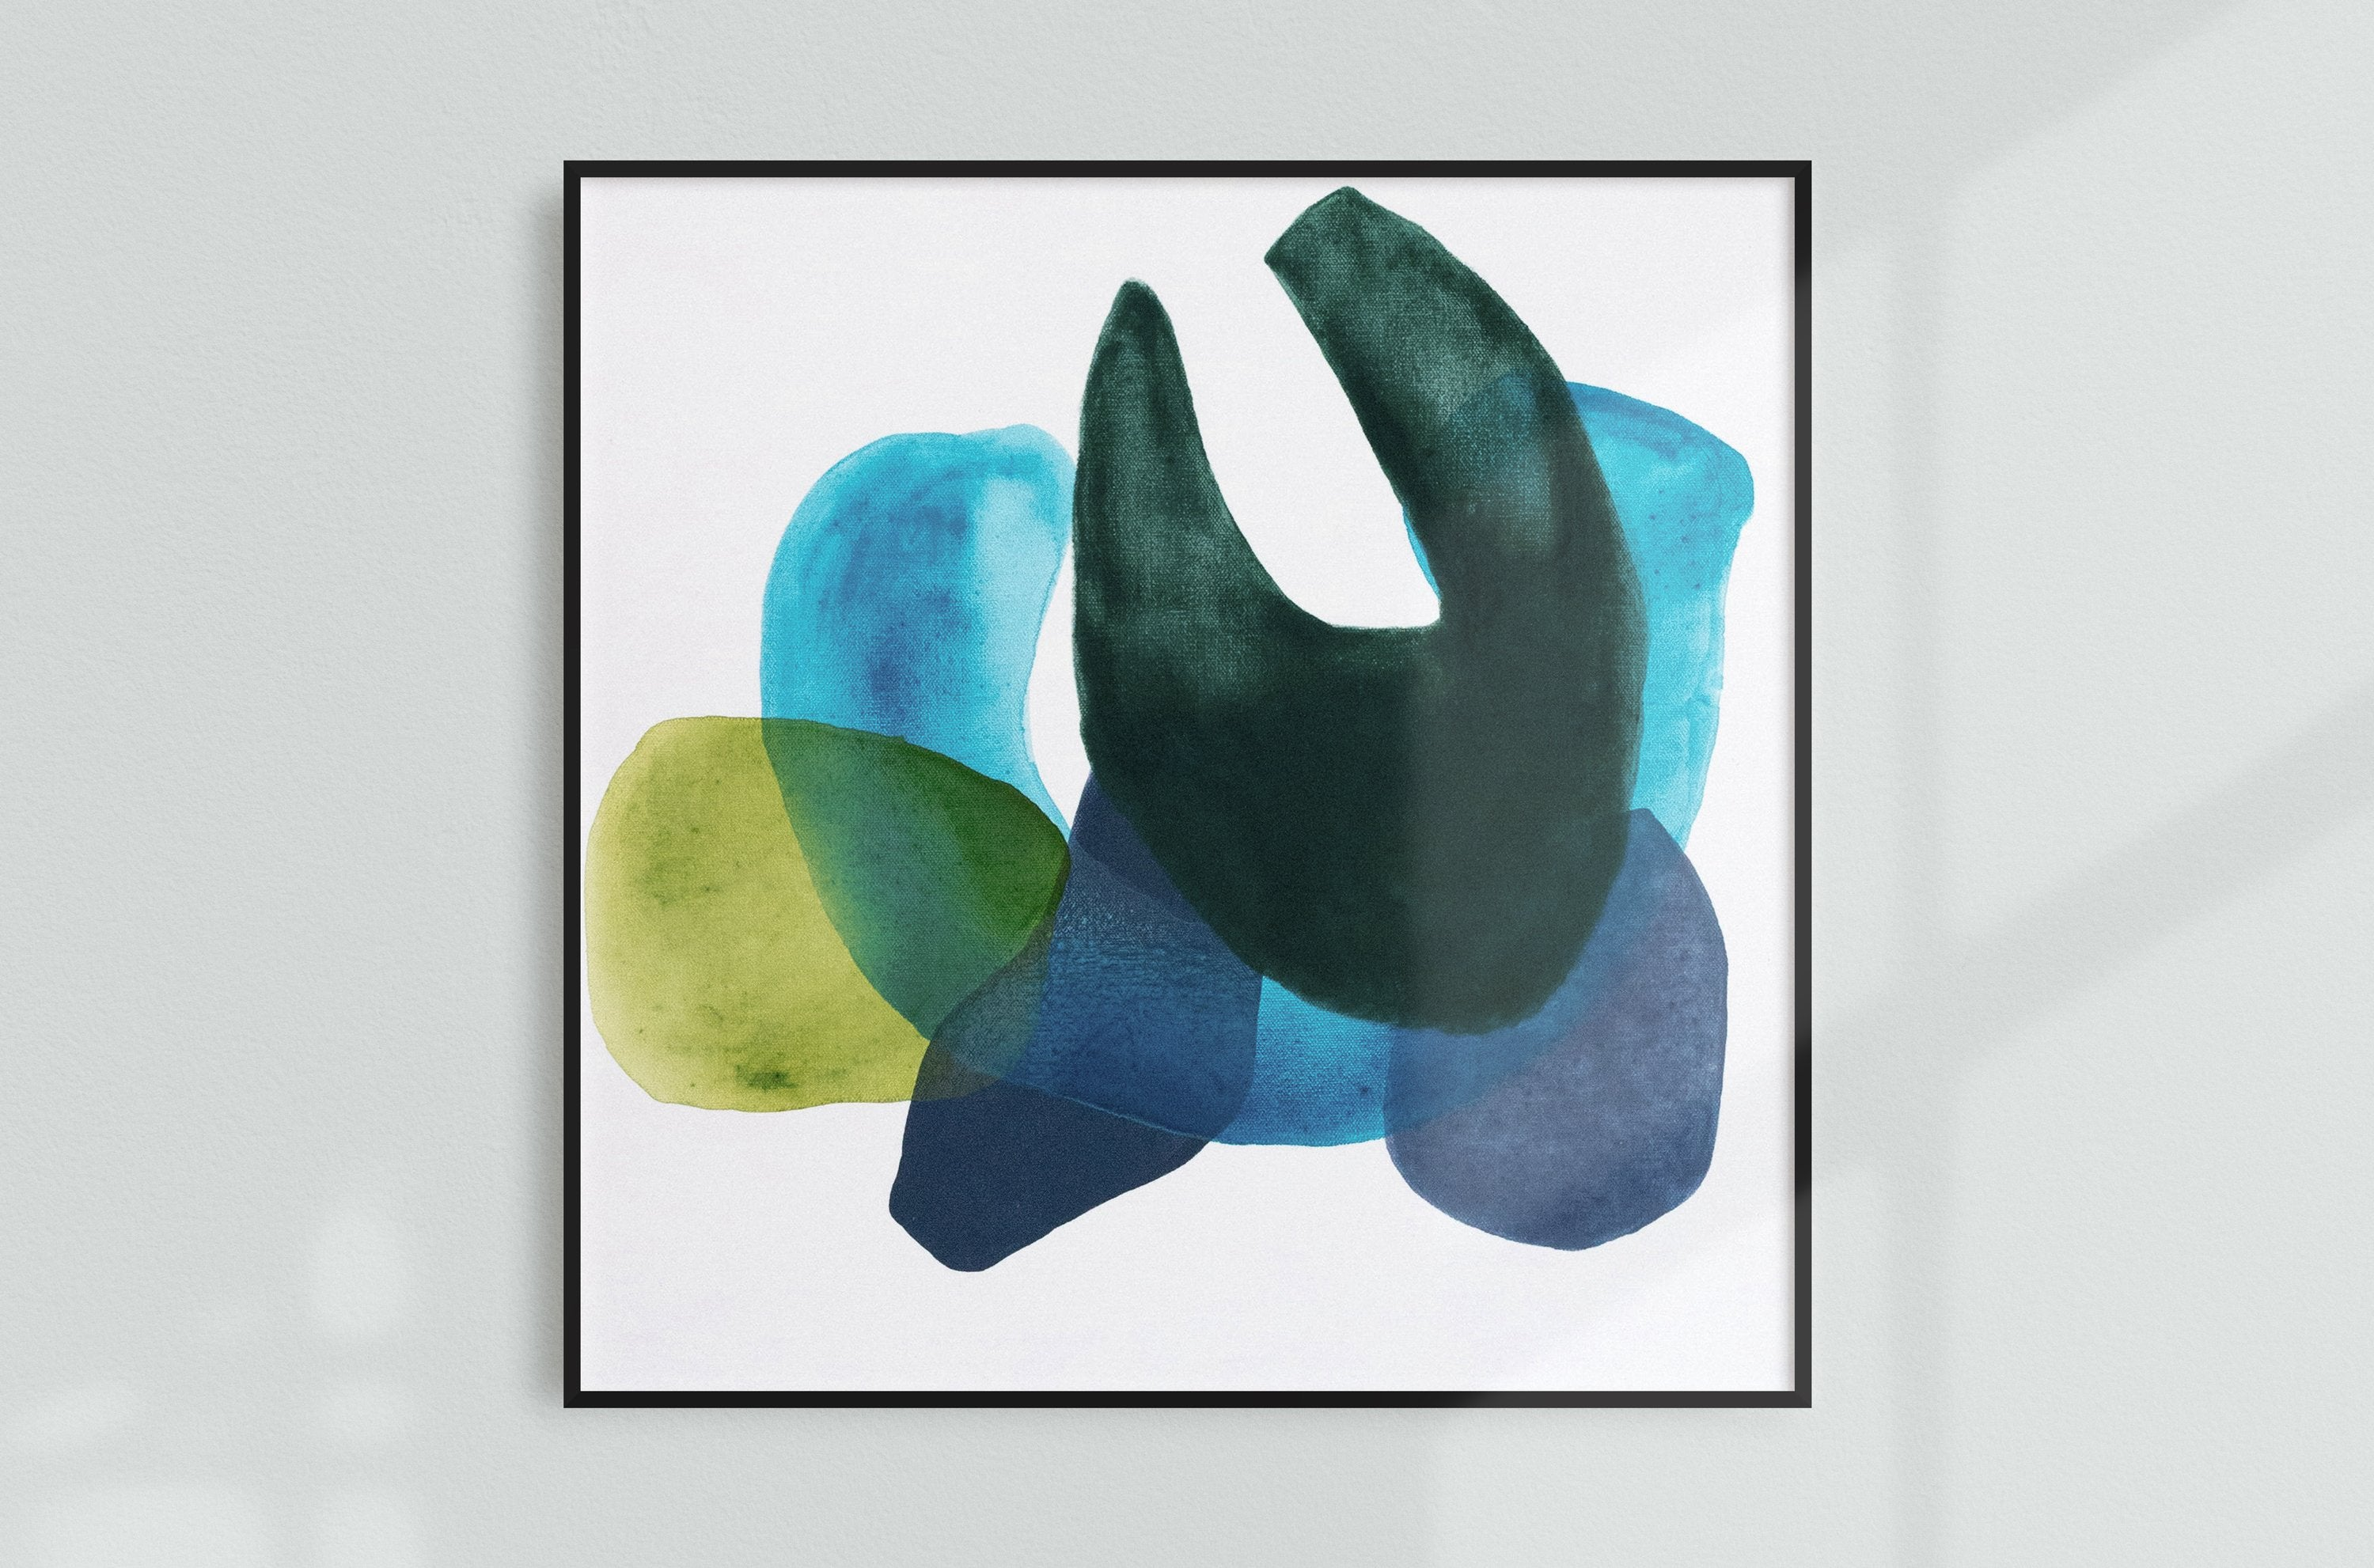 Abstract painting on canvas, blue, navy blue, green, forest green, modern art, geometric art